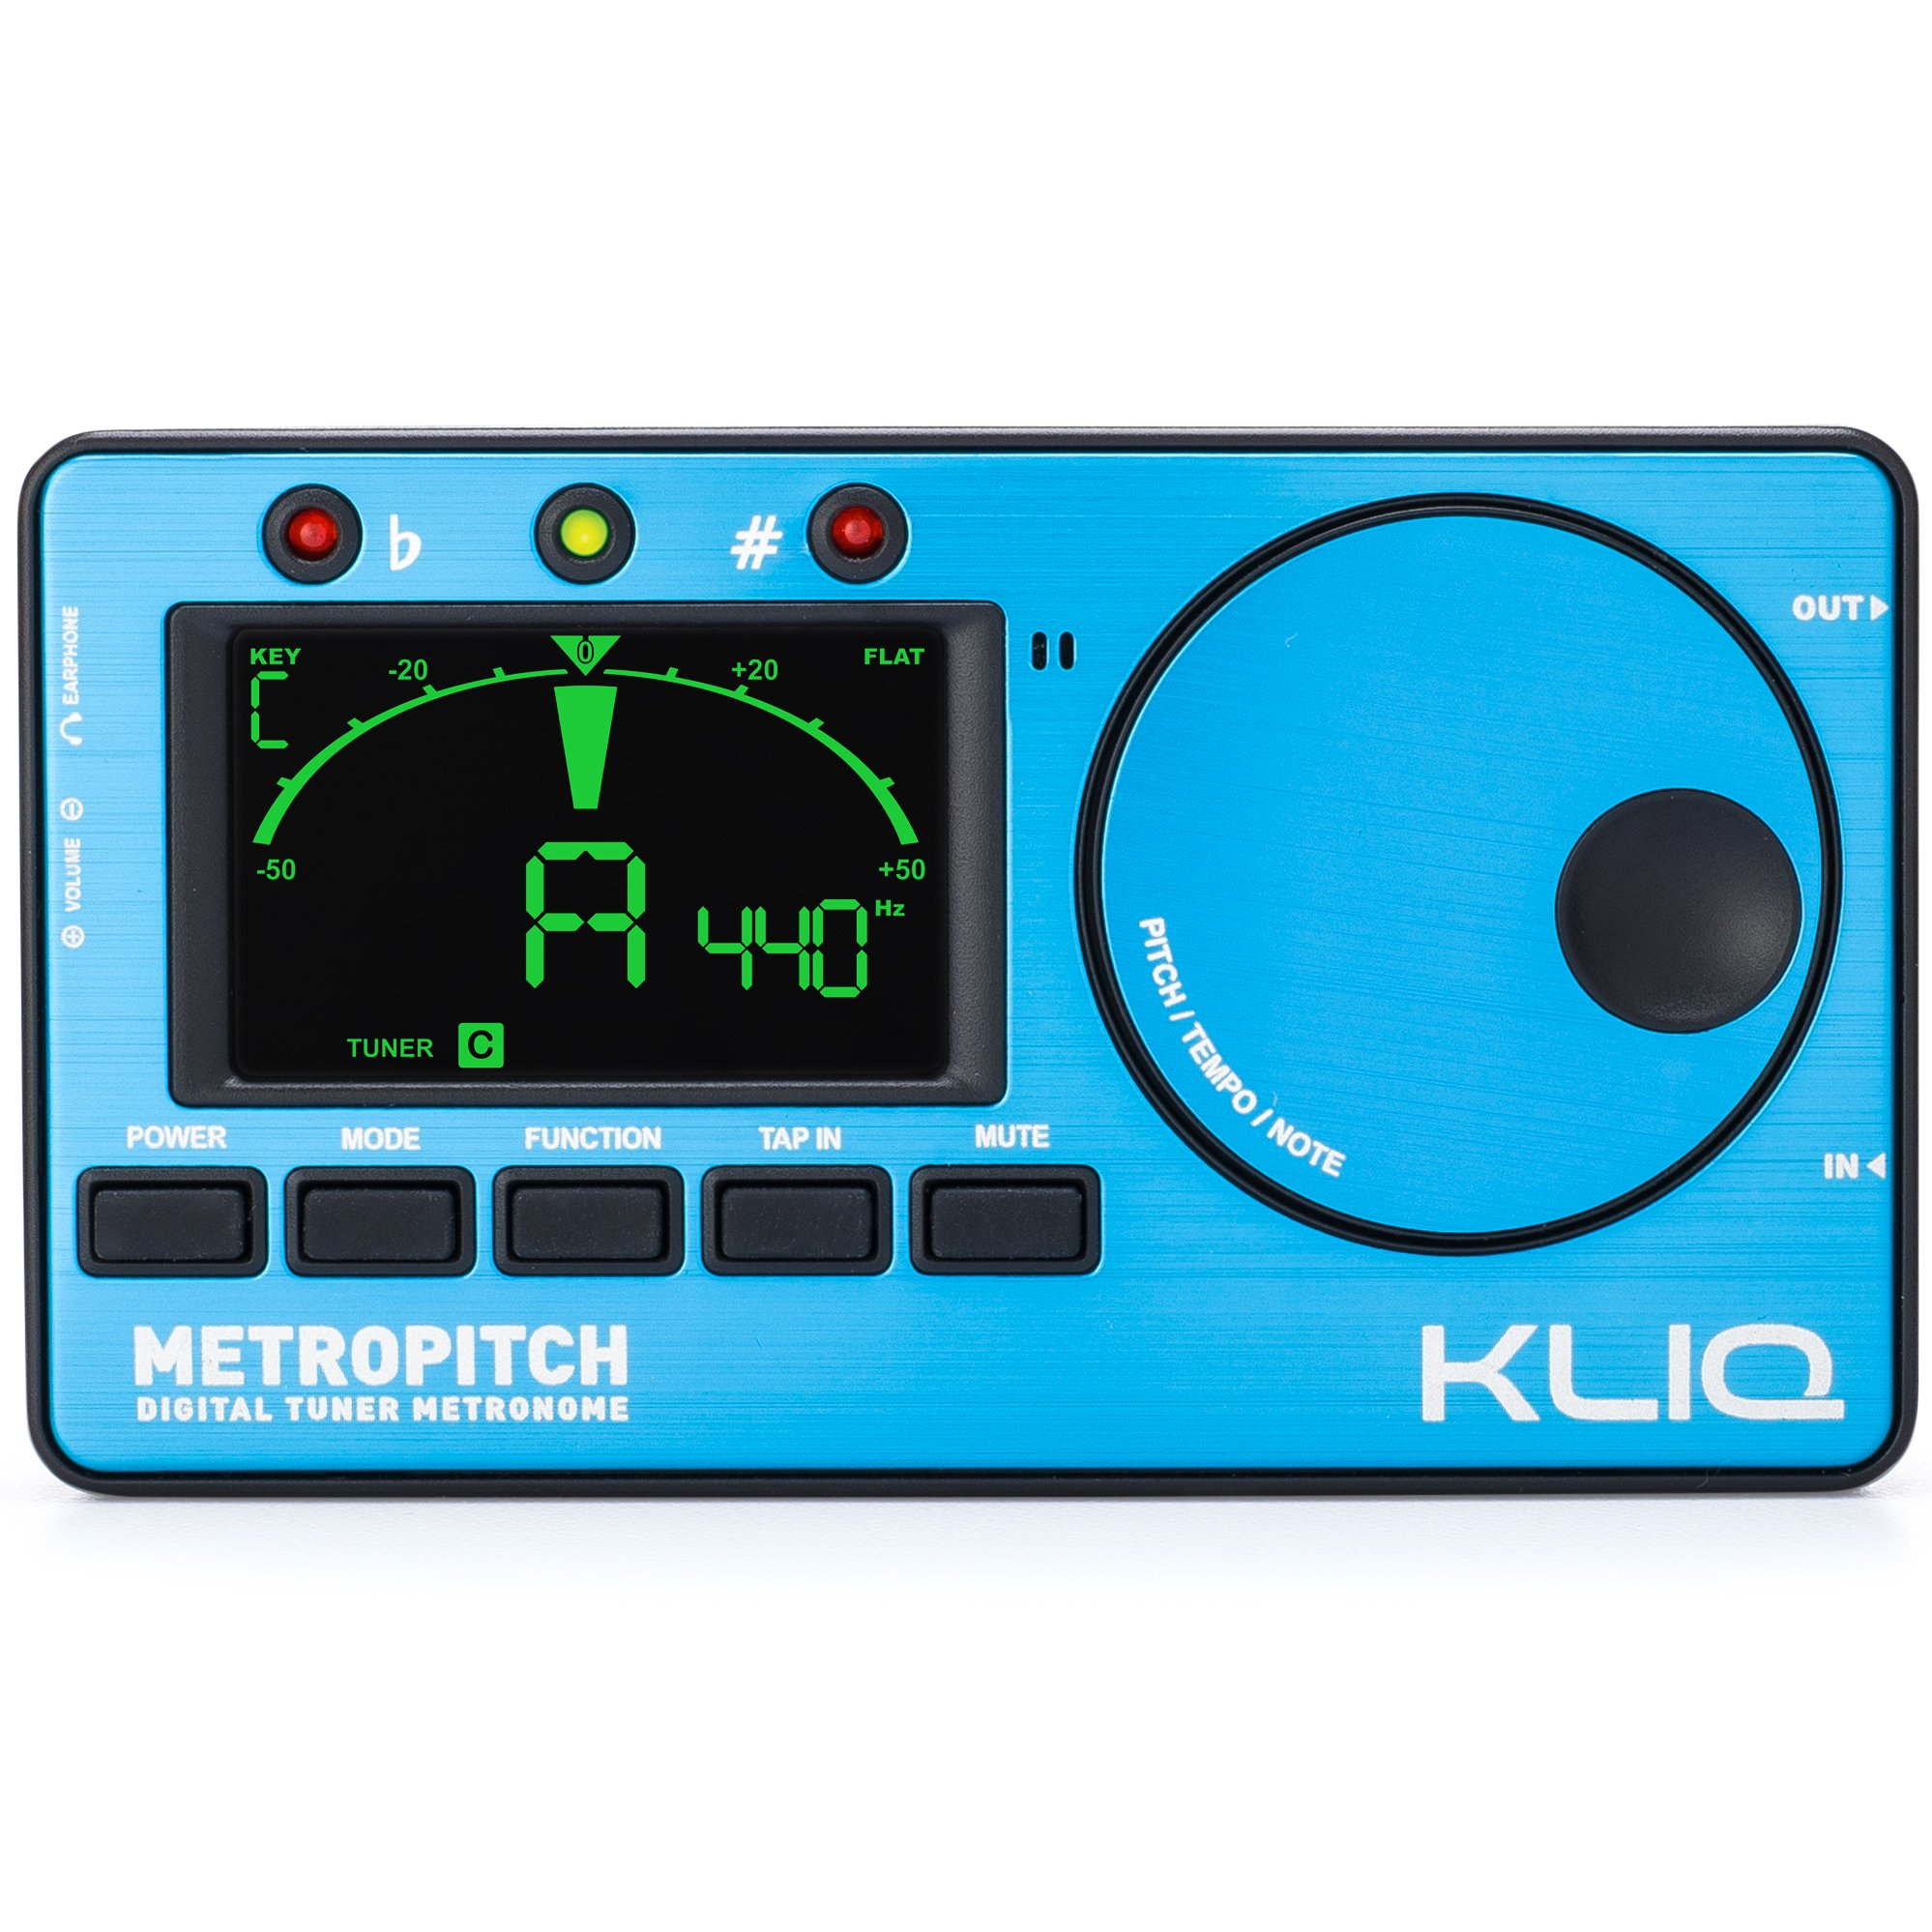 KLIQ MetroPitch - Metronome Tuner for All Instruments - with Guitar, Bass, Violin, Ukulele, and Chromatic Tuning Modes - Tone Generator - Carrying Pouch Included, Blue